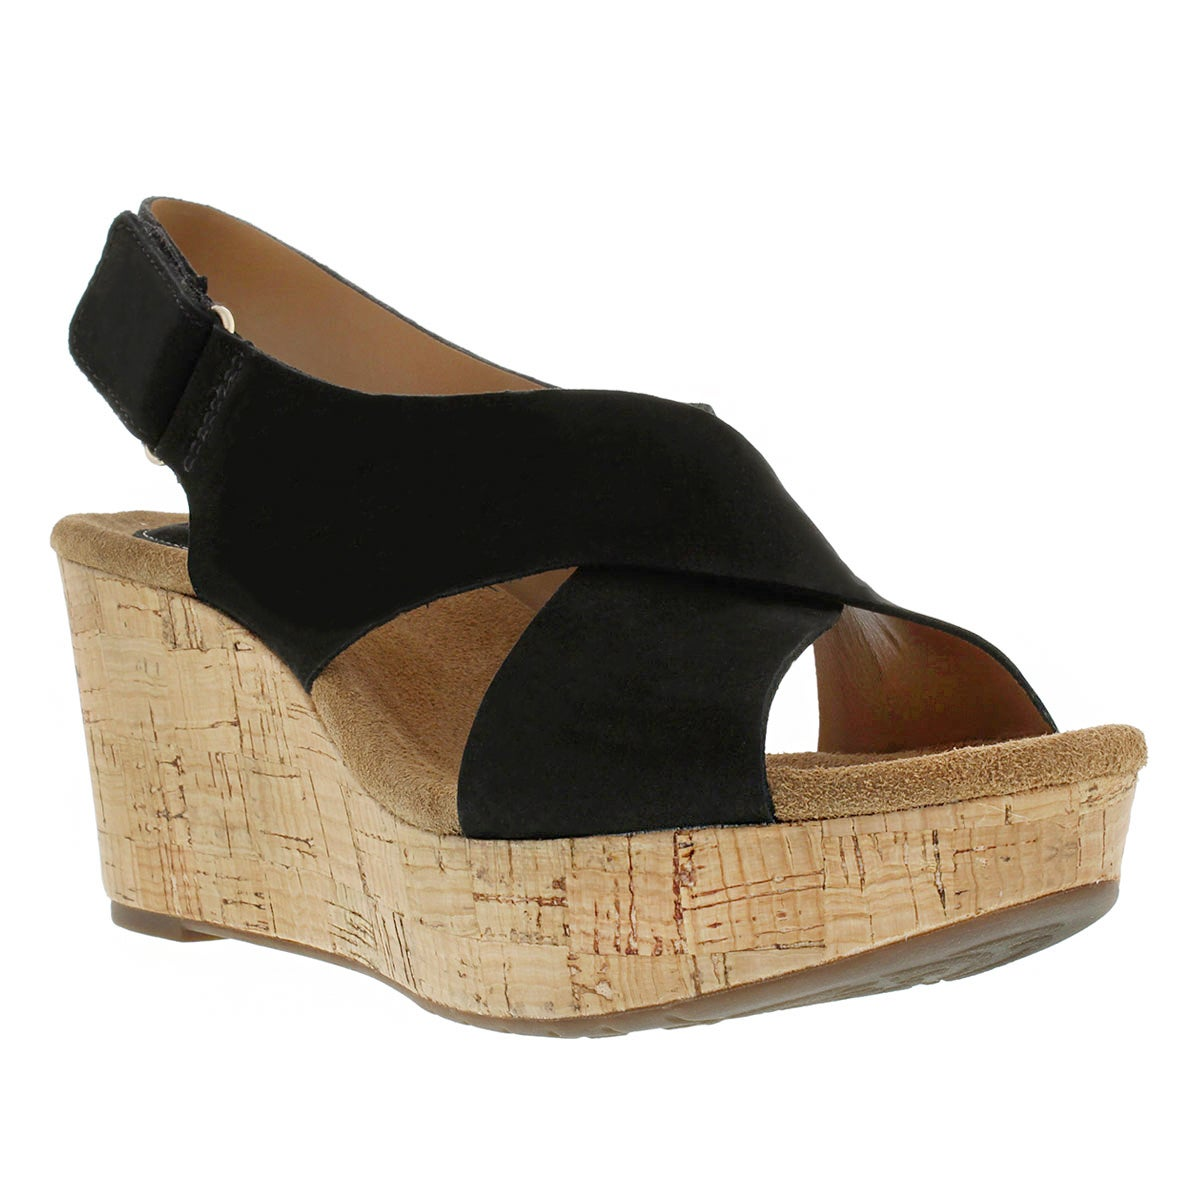 Lds Shae black wedge sandal